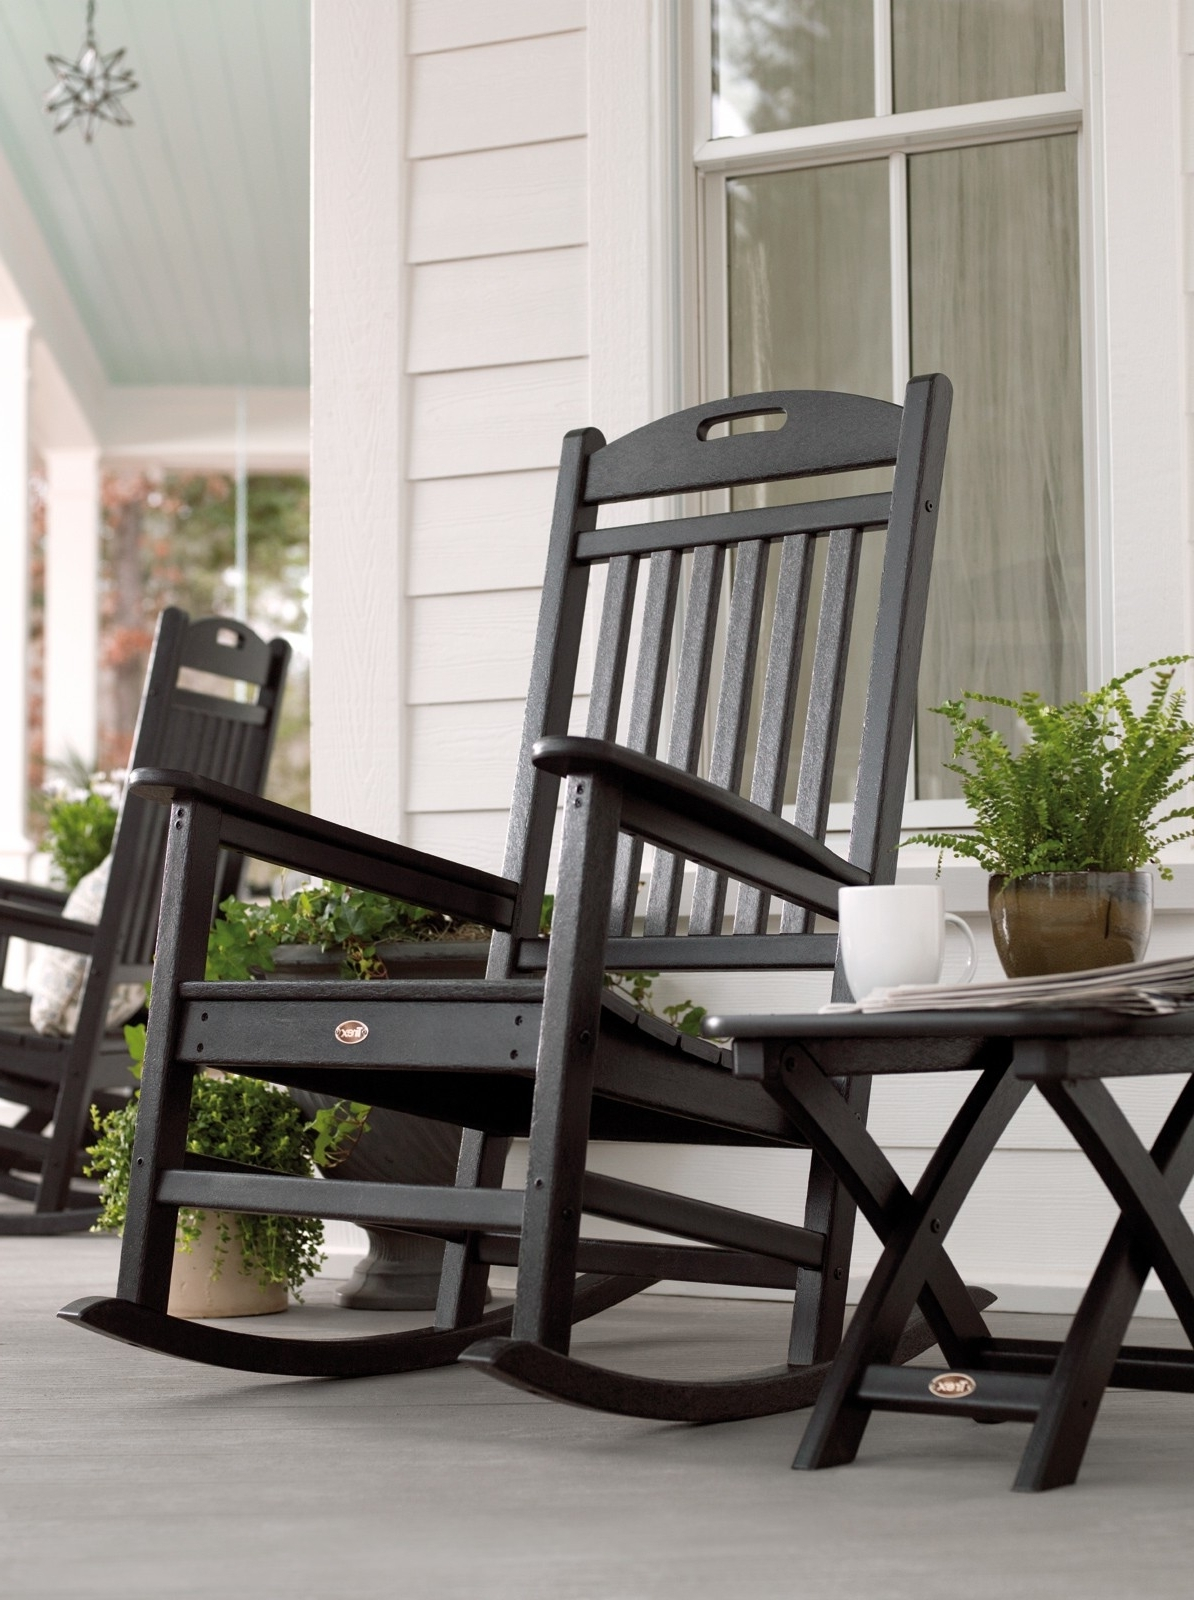 Preferred Retro Outdoor Rocking Chairs With Patio & Garden : Rocking Chairs For Outdoors Amazing Amazon Merry (View 15 of 15)